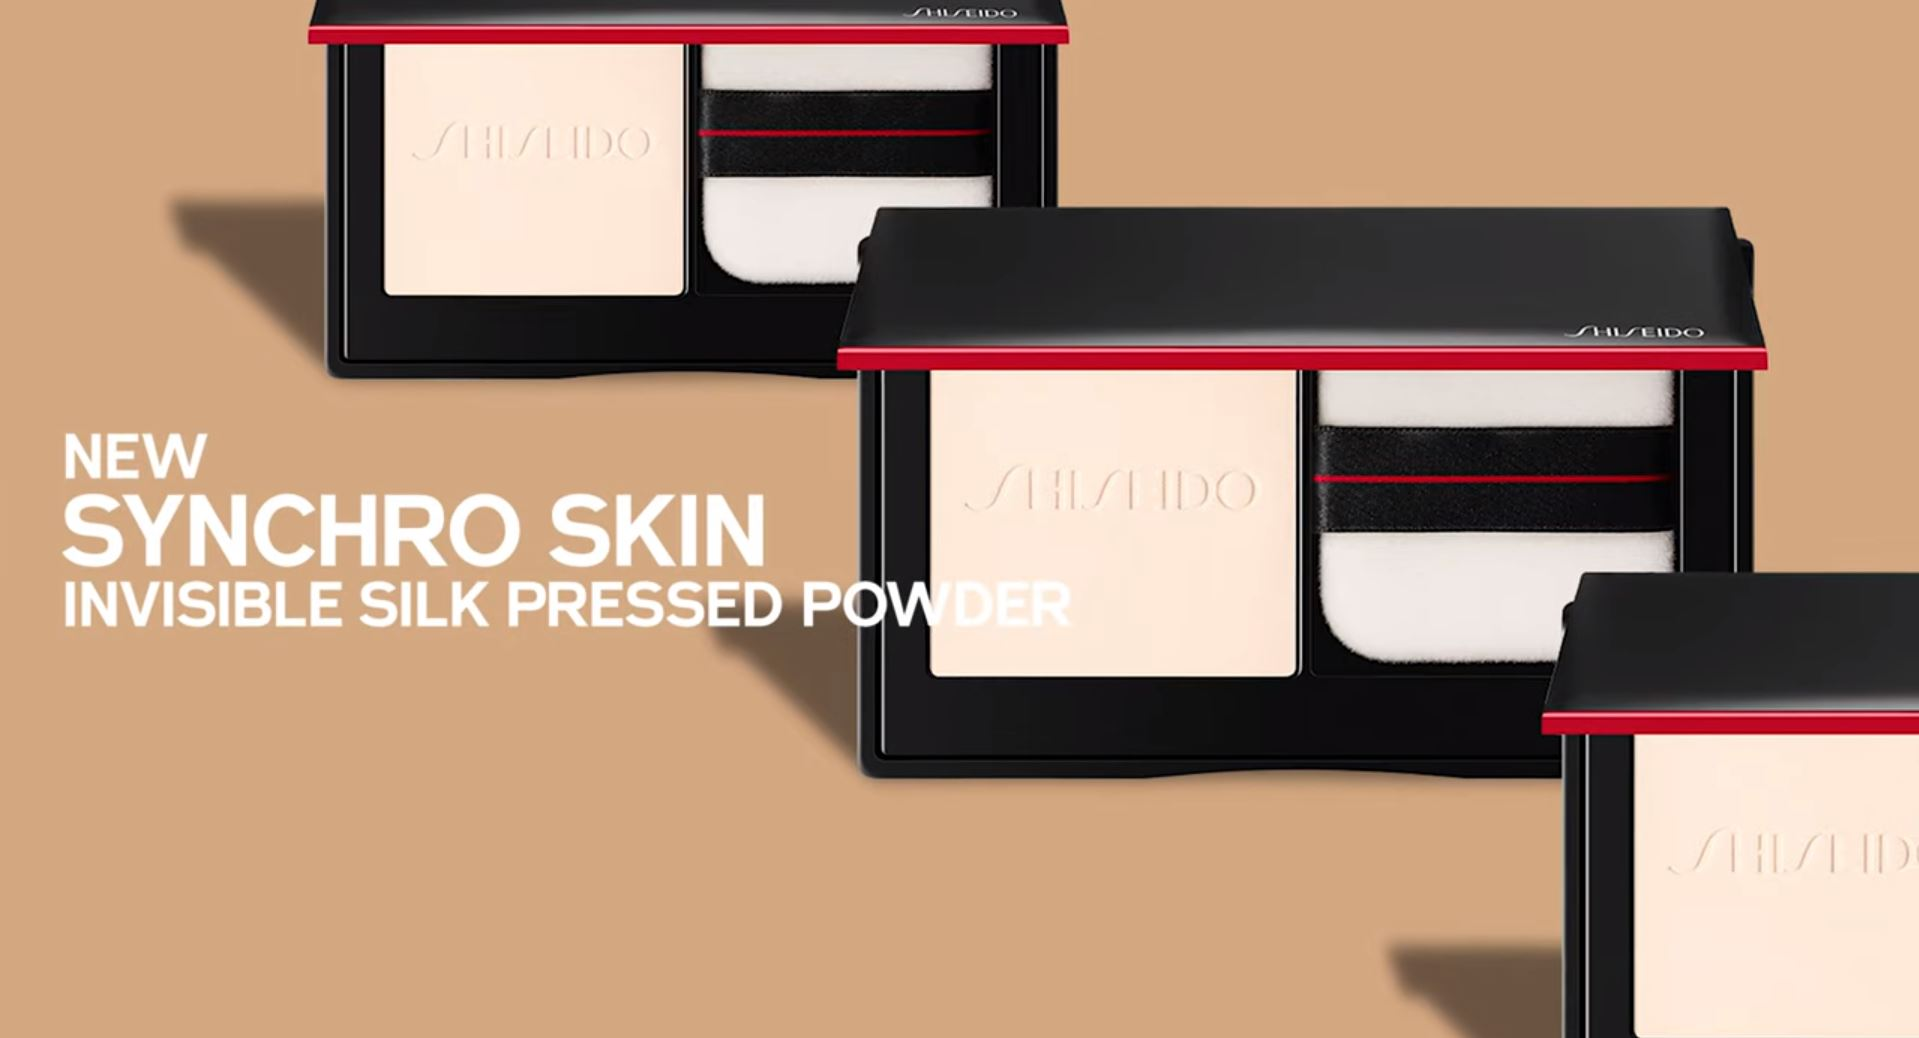 SYNCHRO SKIN Poudre Compacte Soyeuse Invisible